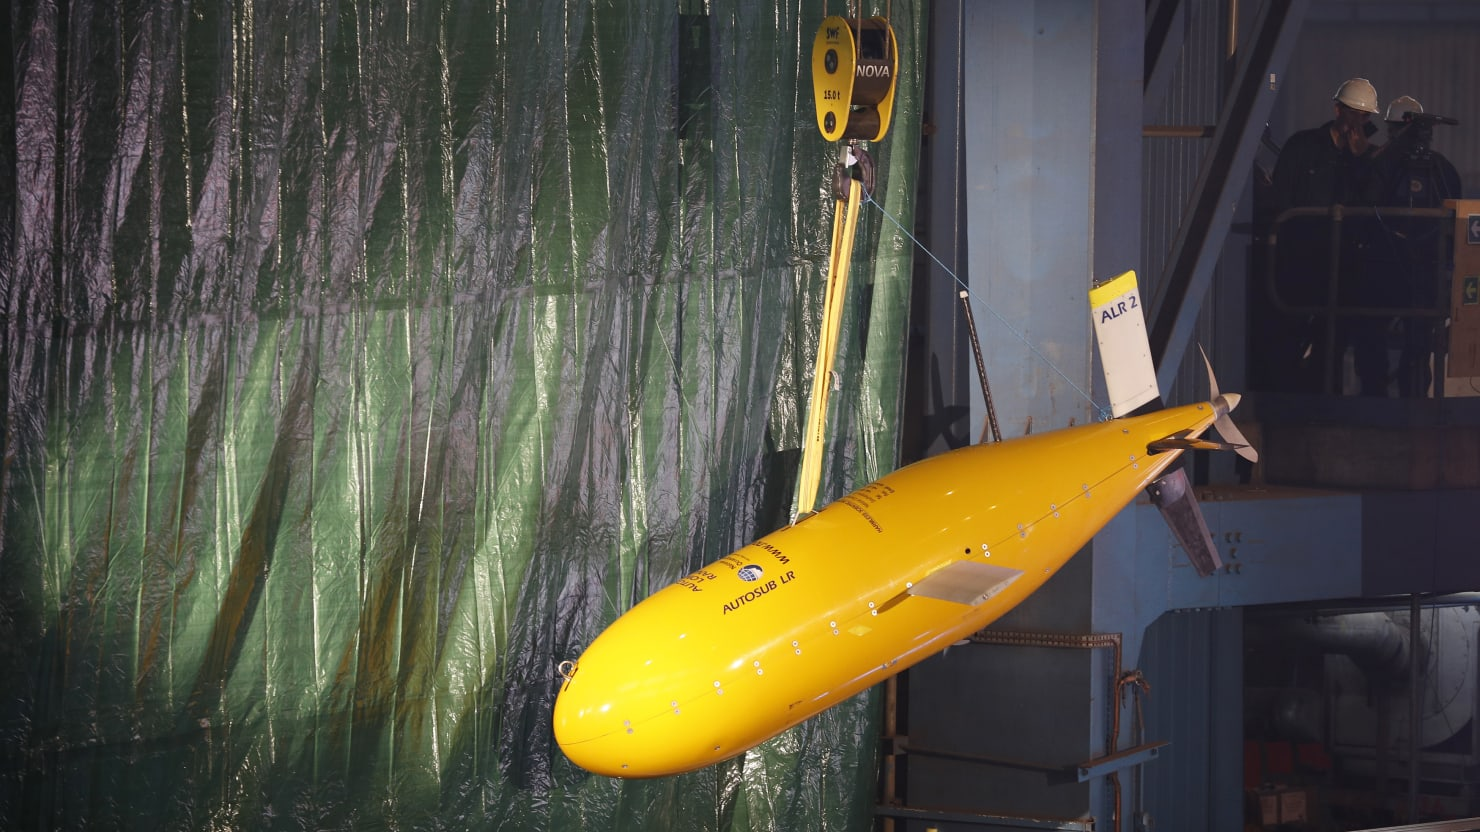 Boaty McBoatface Makes Major Climate Change Discovery on Maiden Mission